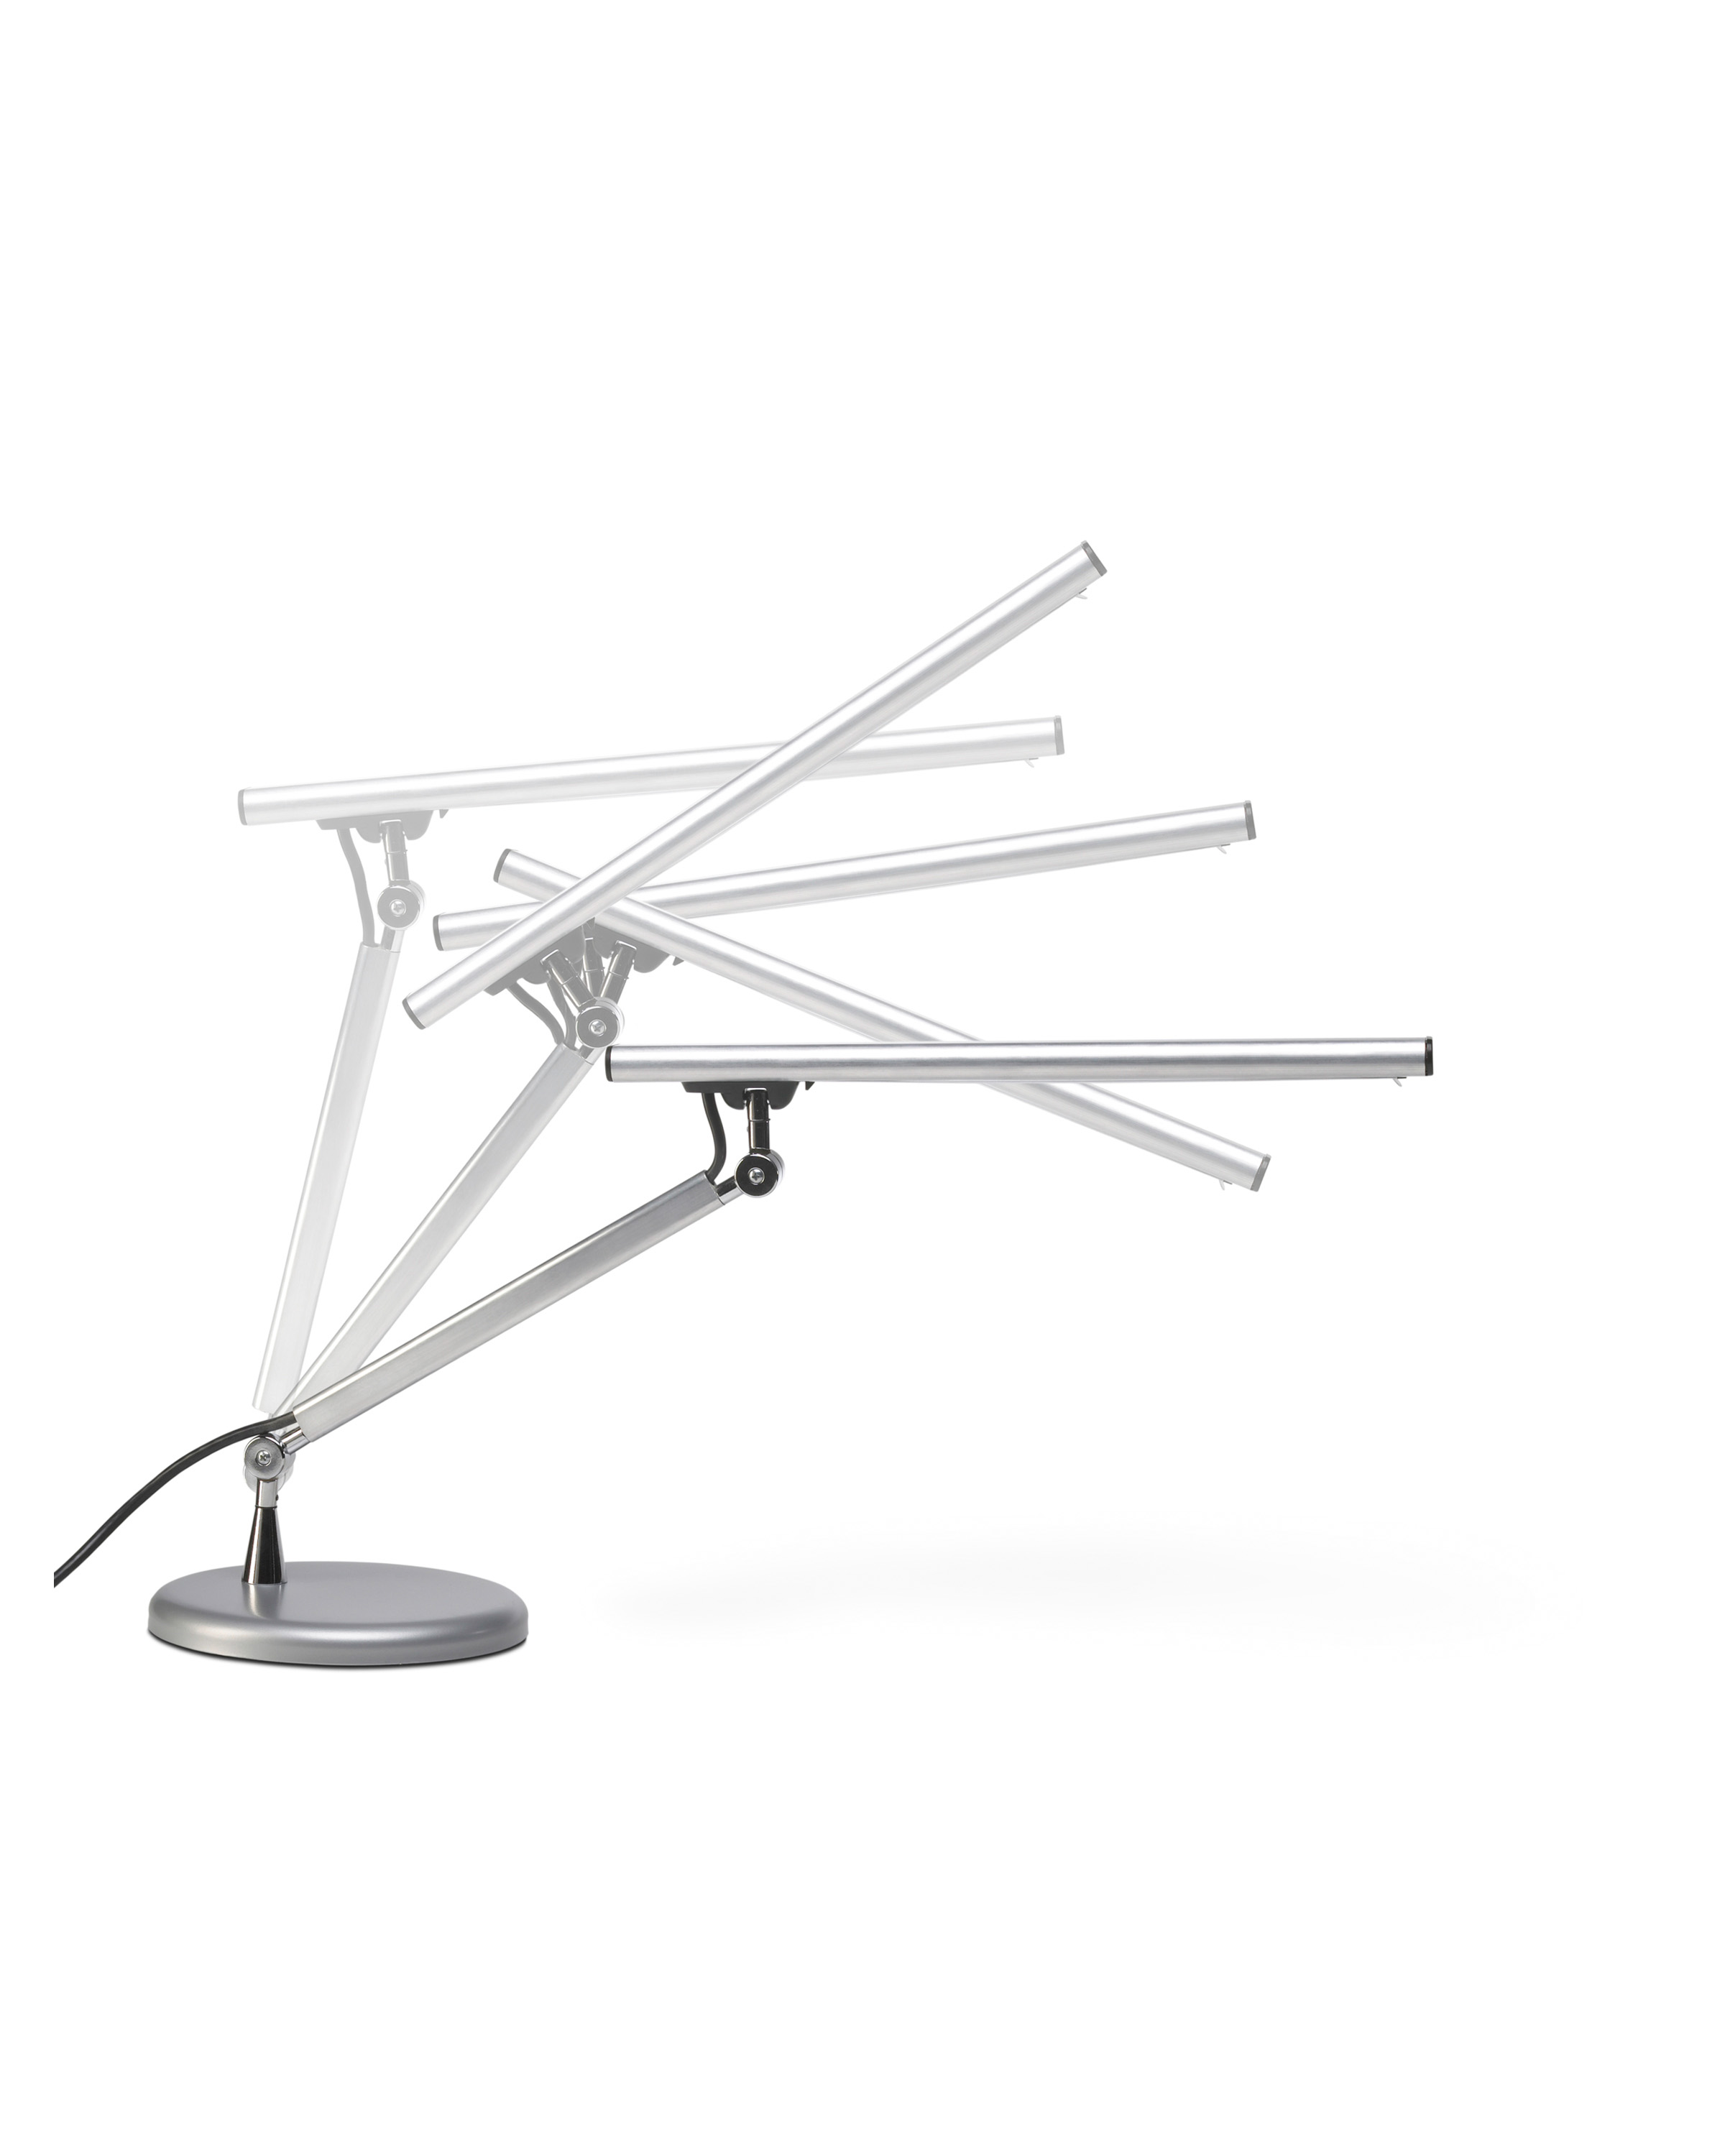 Personal Underline Freestanding Mount ( three points of articulation provide an infinite number of positions)